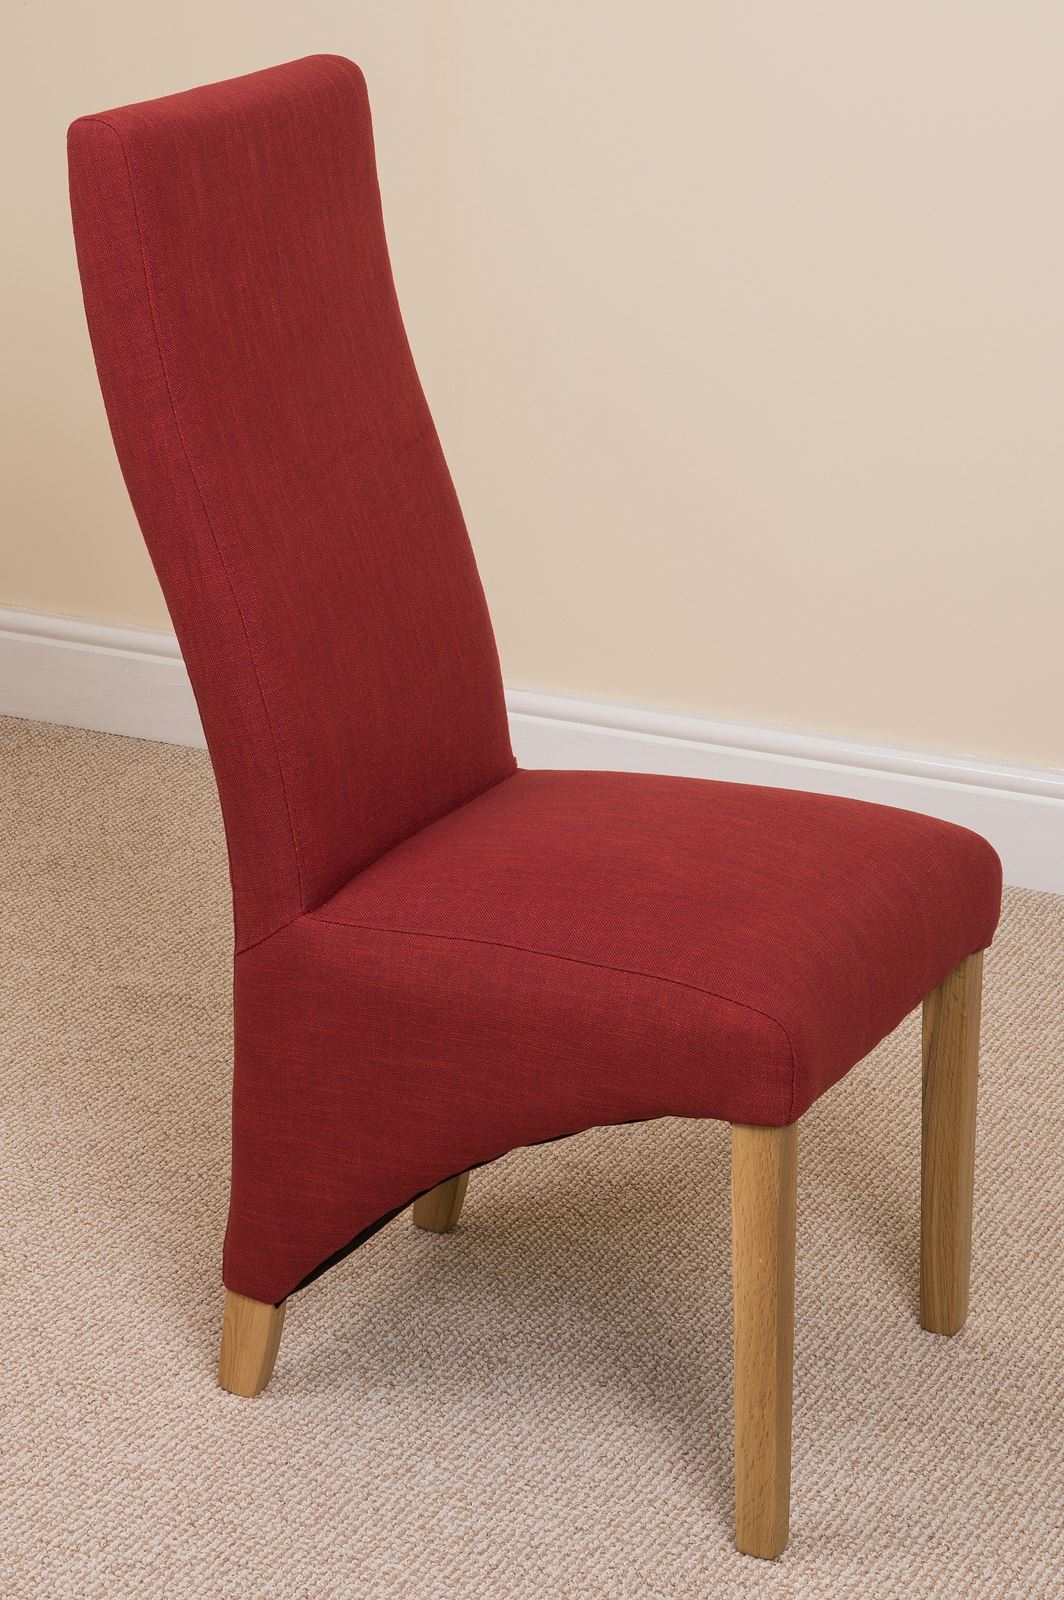 fabrics for kitchen chairs folding chair nairobi lola curved back red fabric dining room